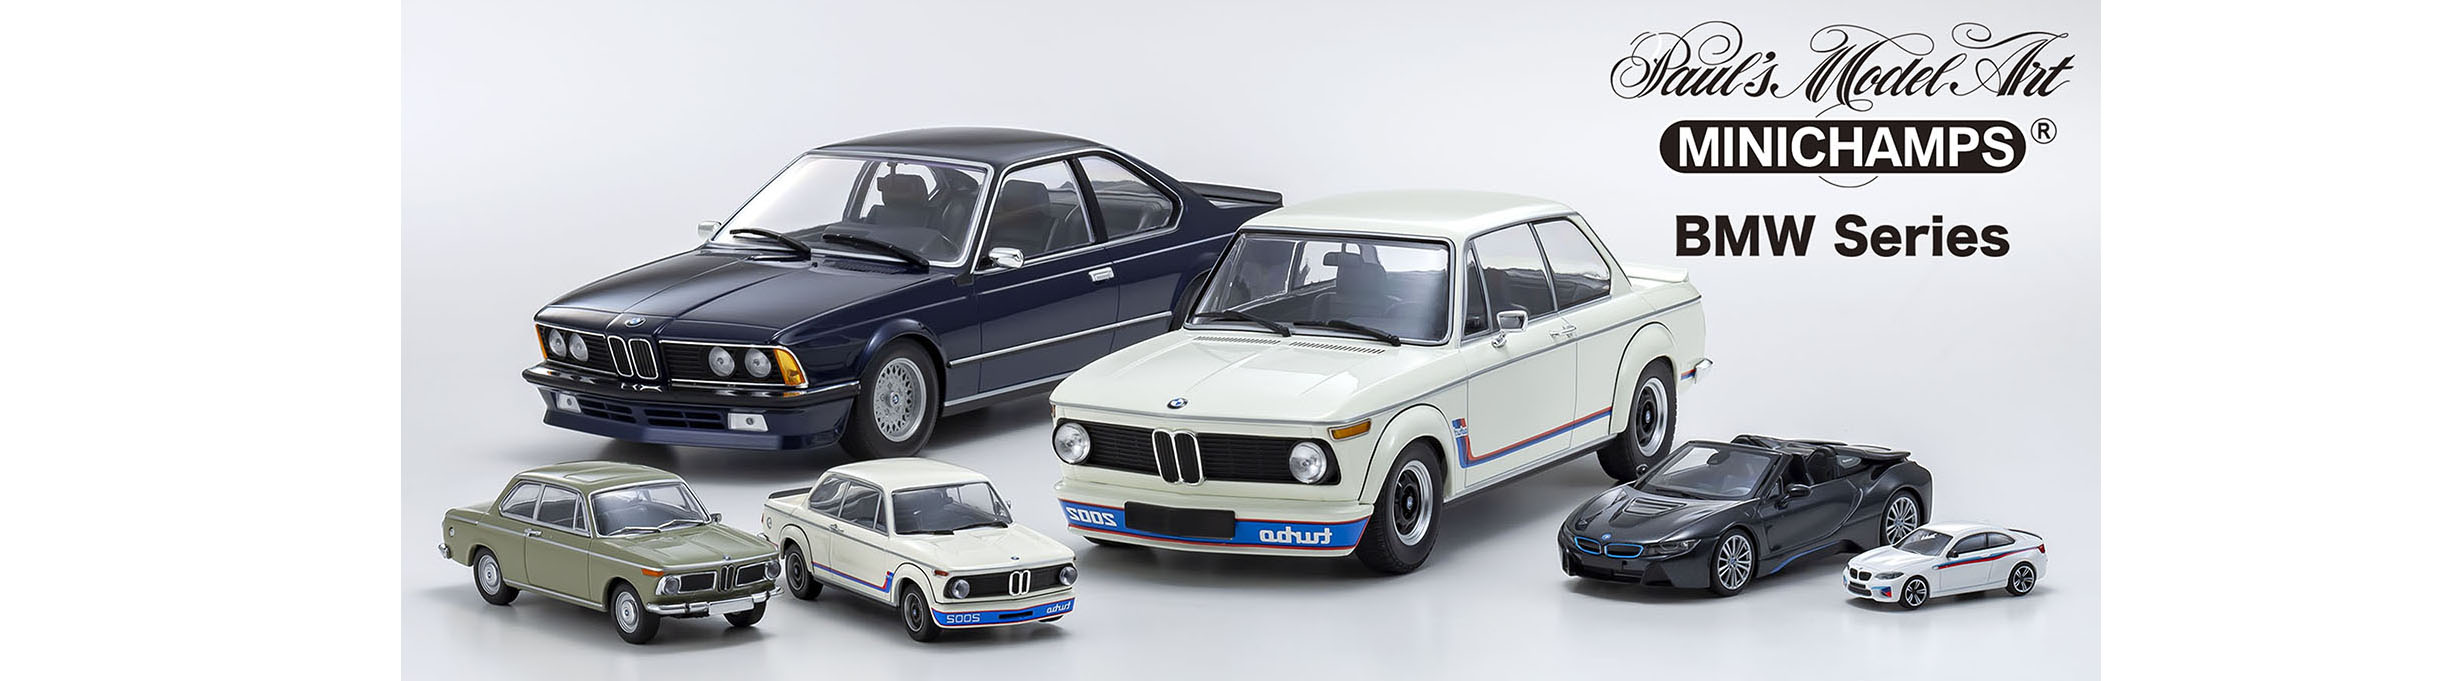 MINICHAMPS BMW 特集